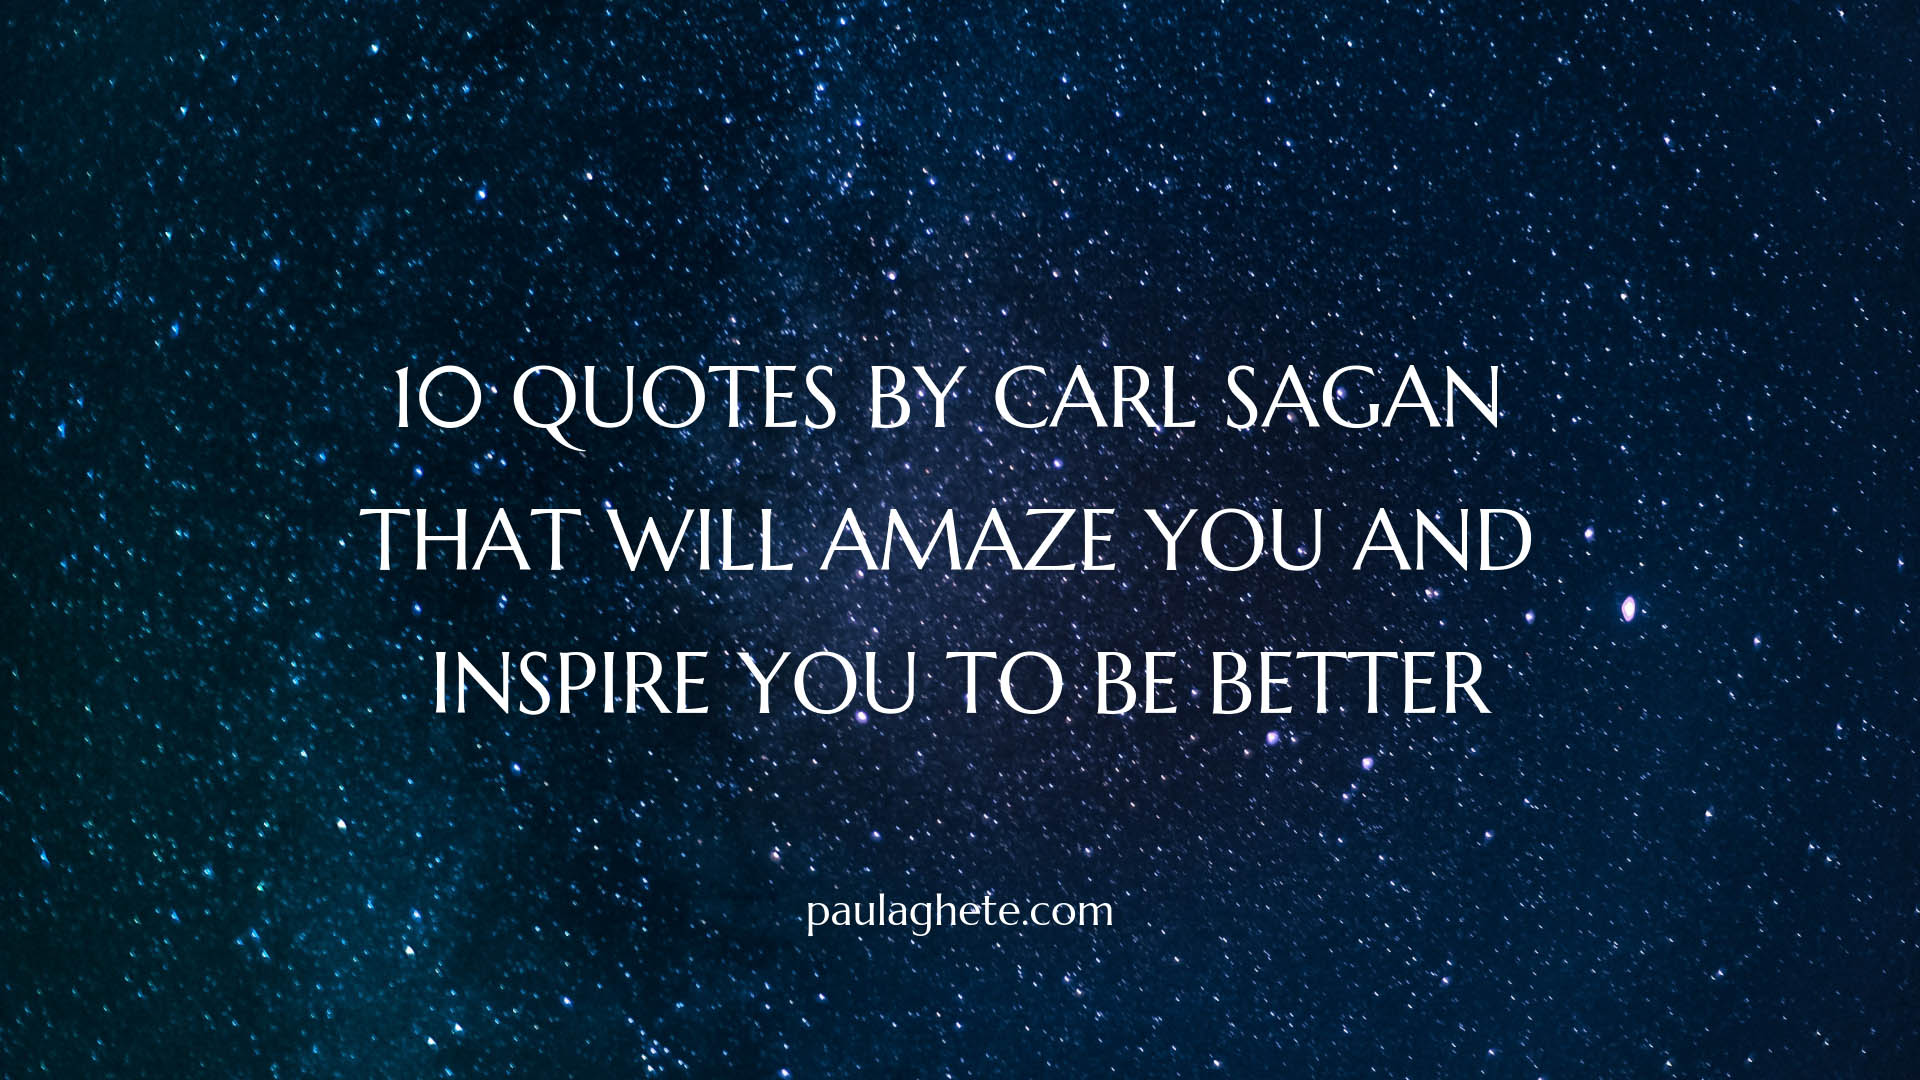 10 Quotes By Carl Sagan That Will Amaze You And Inspire You